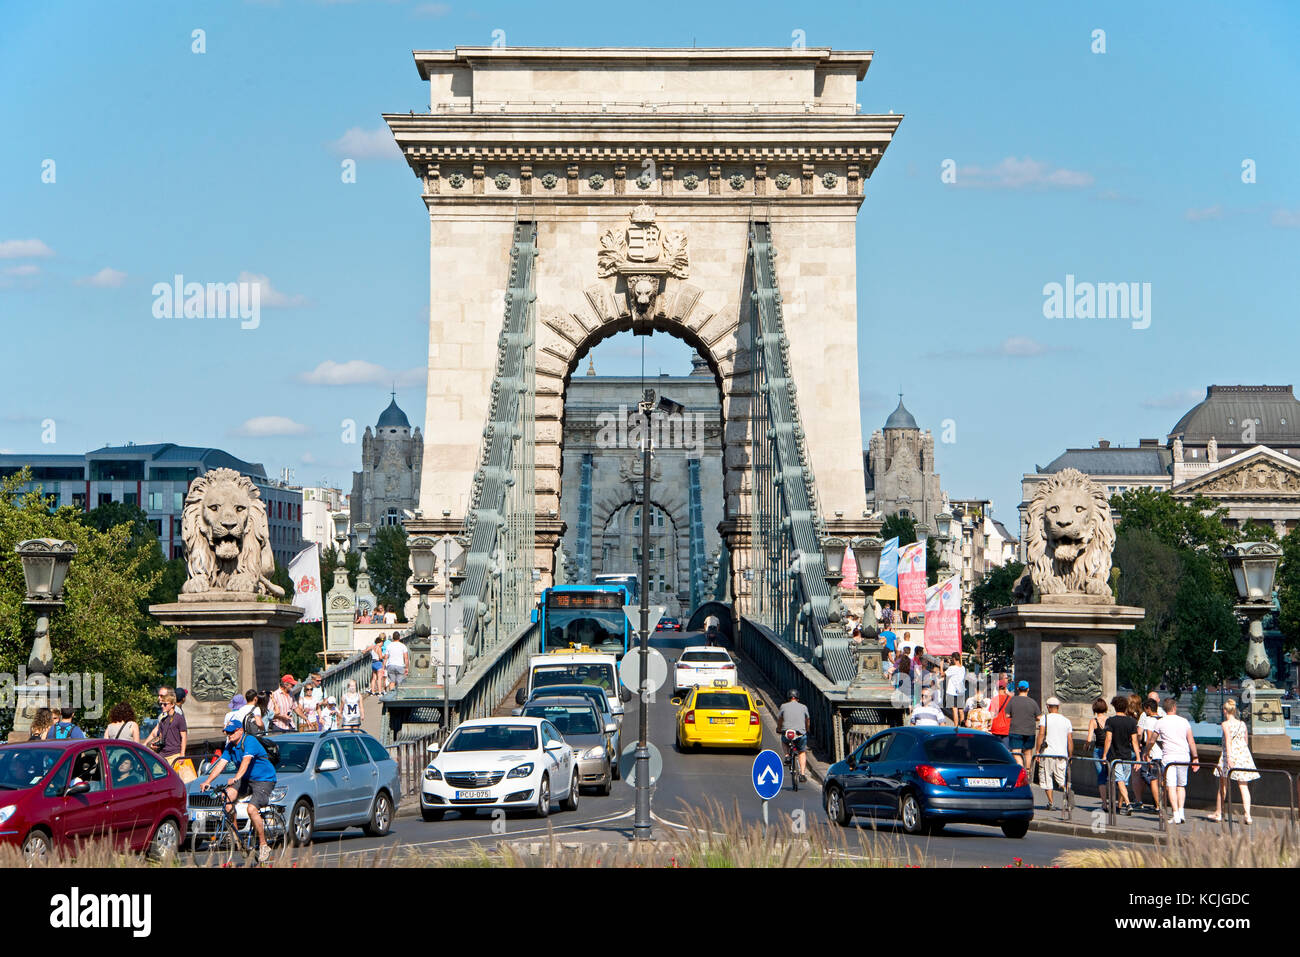 From the Buda side of Budapest a compressed perspective view of tourists, traffic, cars, vehicles entering and leaving - Stock Image